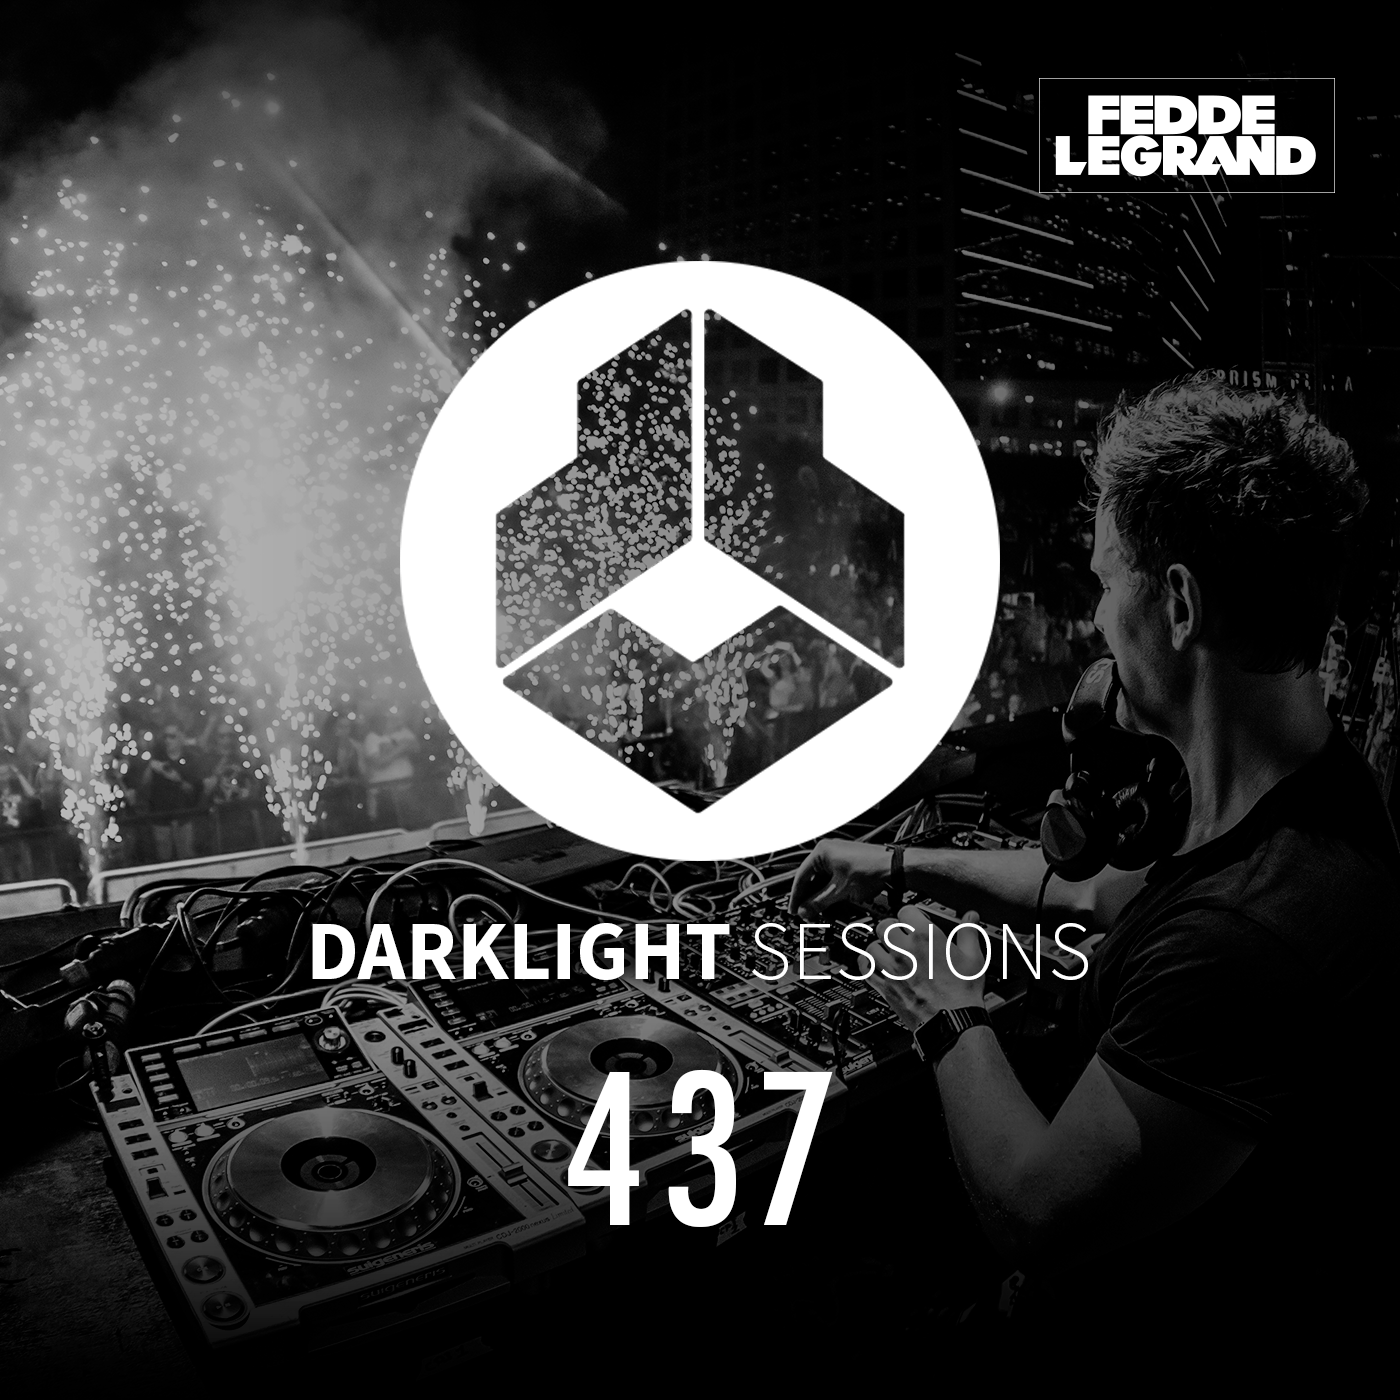 Darklight Sessions 437